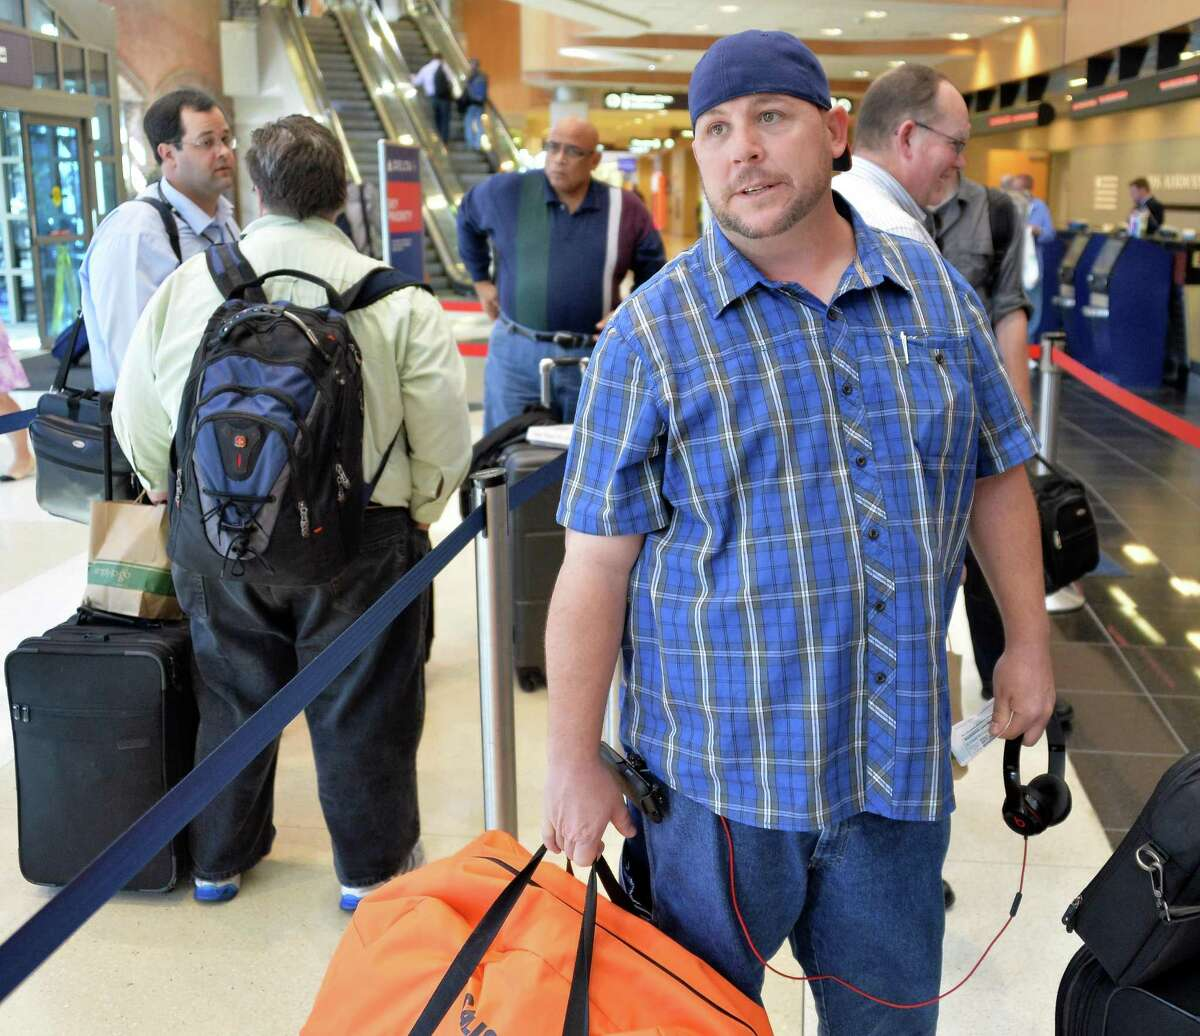 Stranded traveler Brian Campbell of Phoenix, Arizona, in line at a ticket counter at Albany Airport after a fire at a suburban air traffic control center in Illinois disrupted flights Friday Sept. 26, 2014. (John Carl D'Annibale / Times Union)